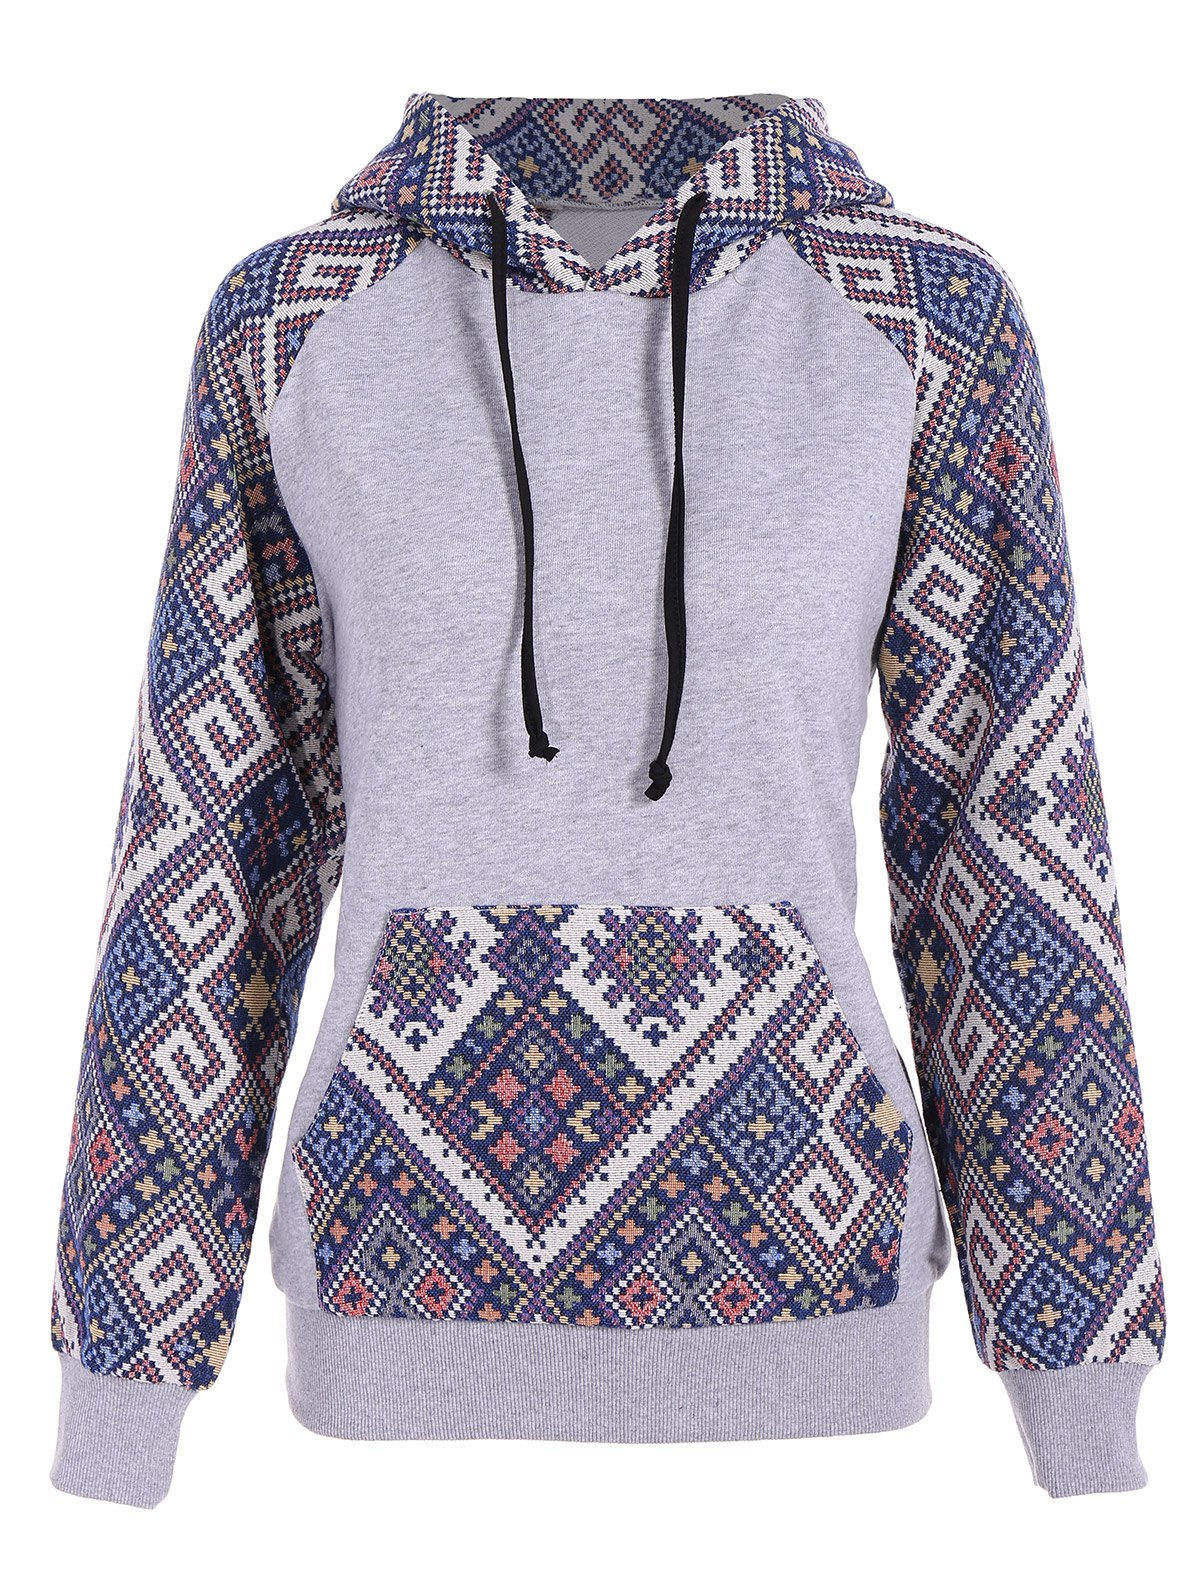 Front Pocket Jacquard Tribal Hoodie - GRAY/BLUE M